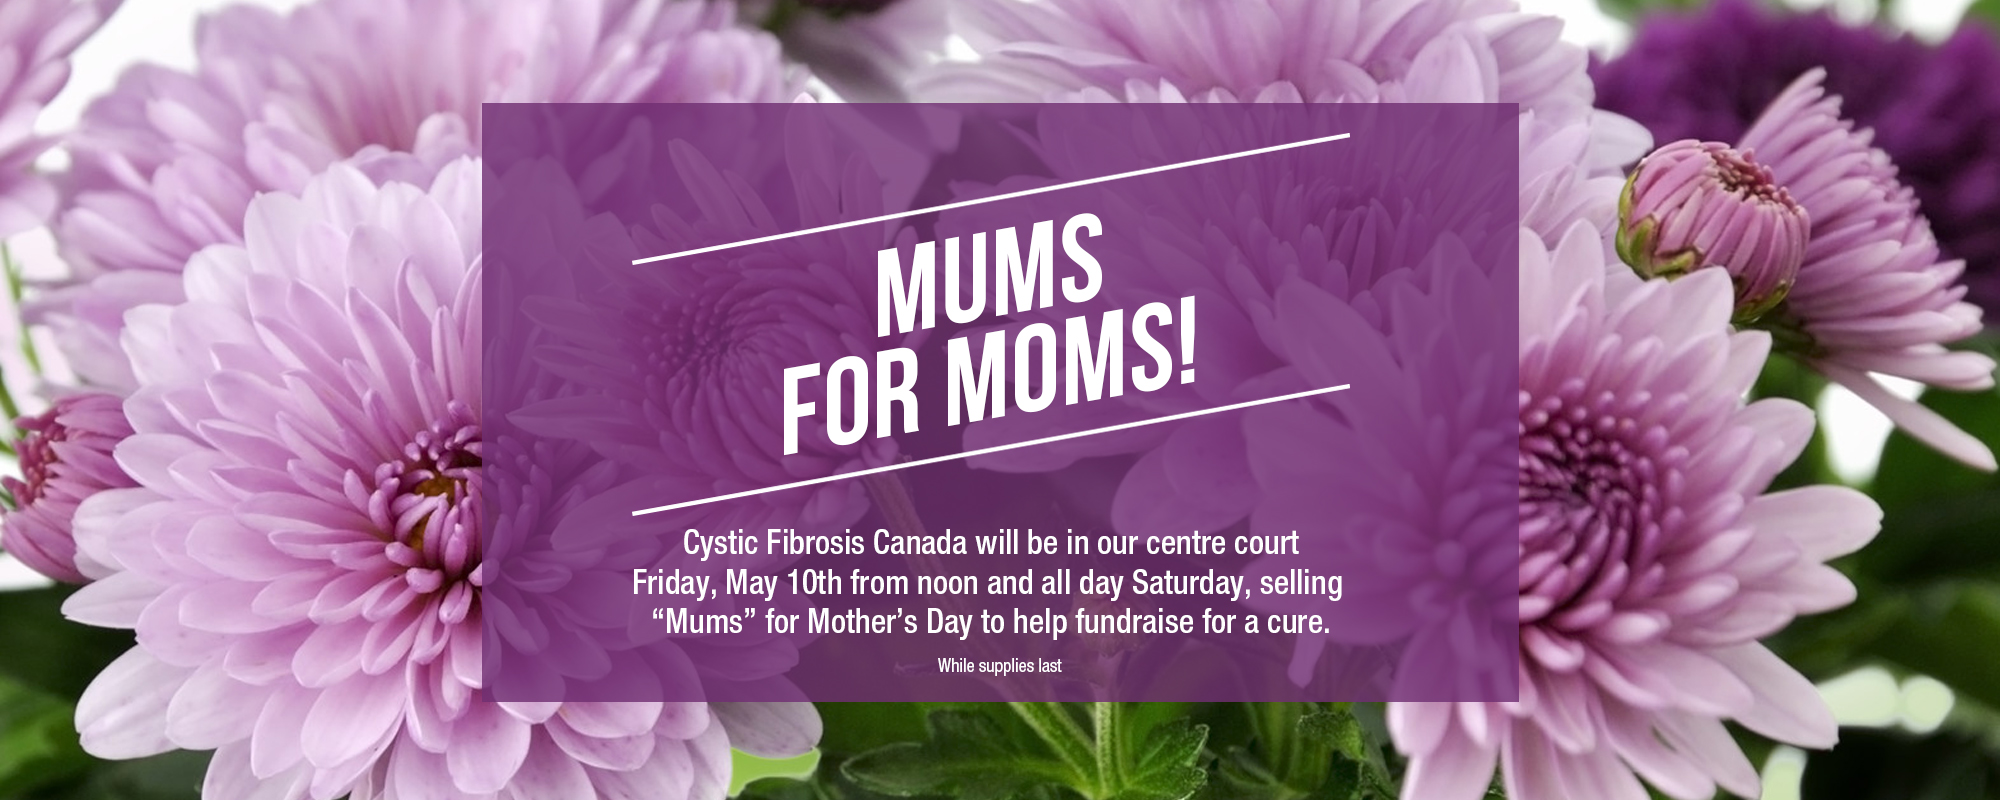 mums for moms